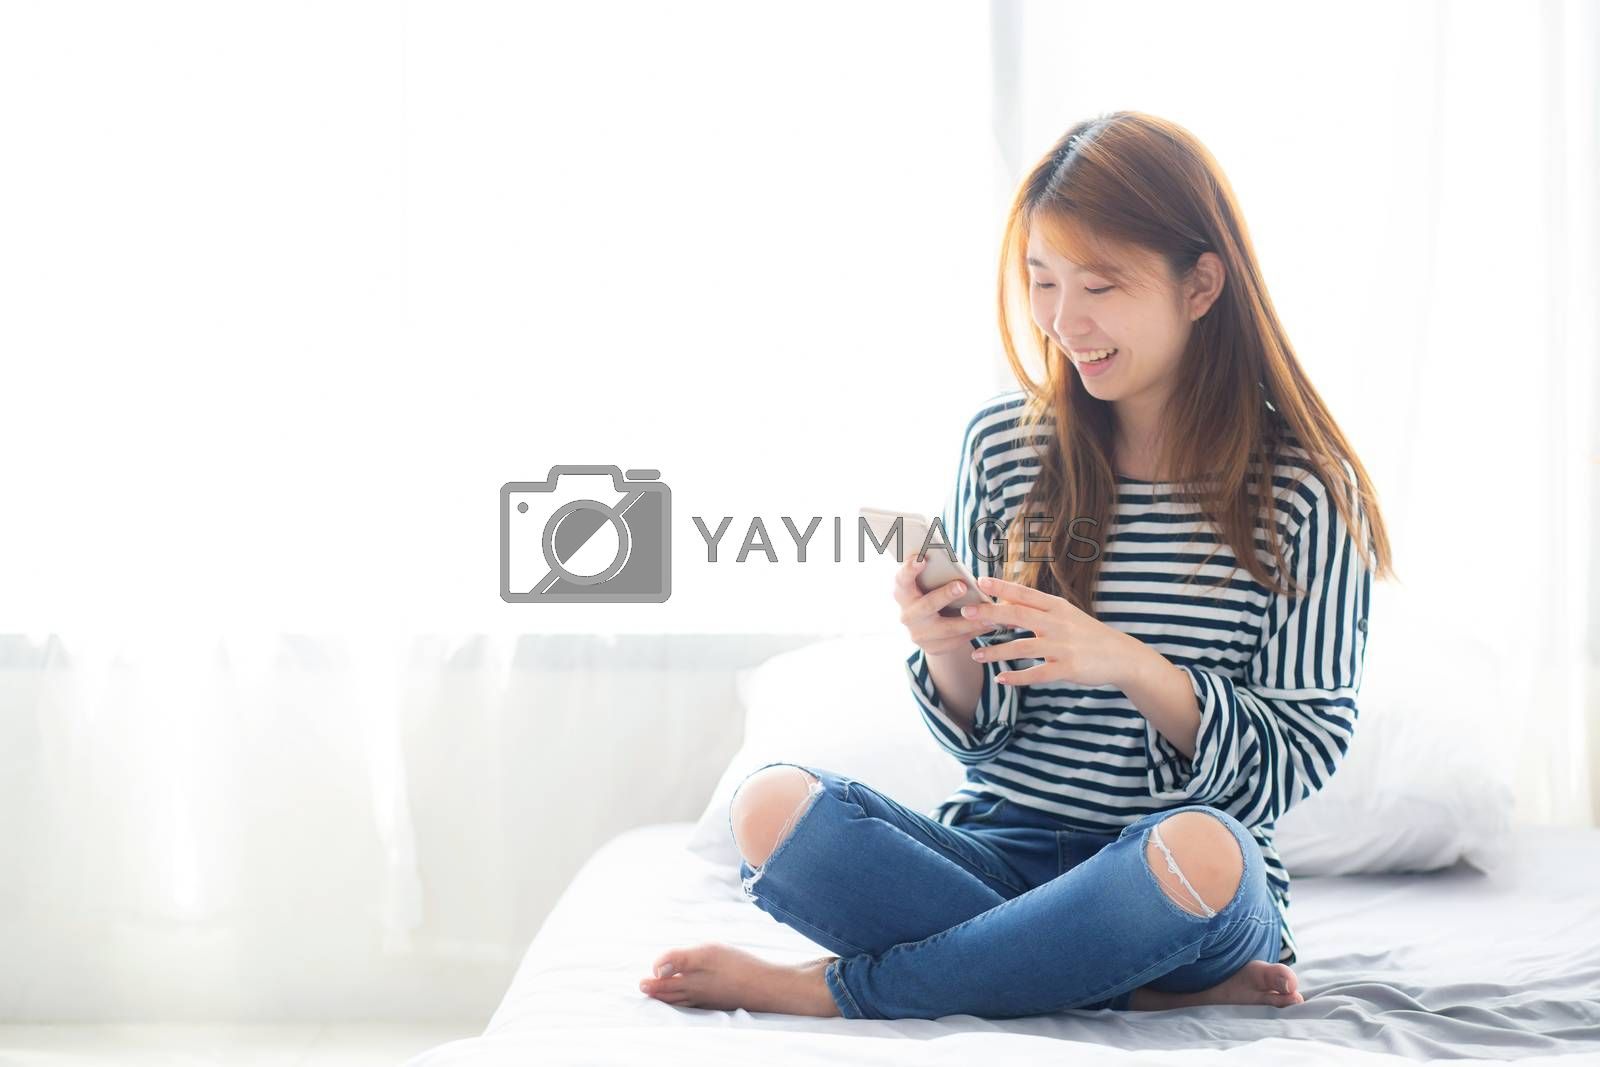 Beautiful young asian woman smiling sitting relax on the bed in the morning, girl using mobile smart phone talking enjoy, communication and social network concept.